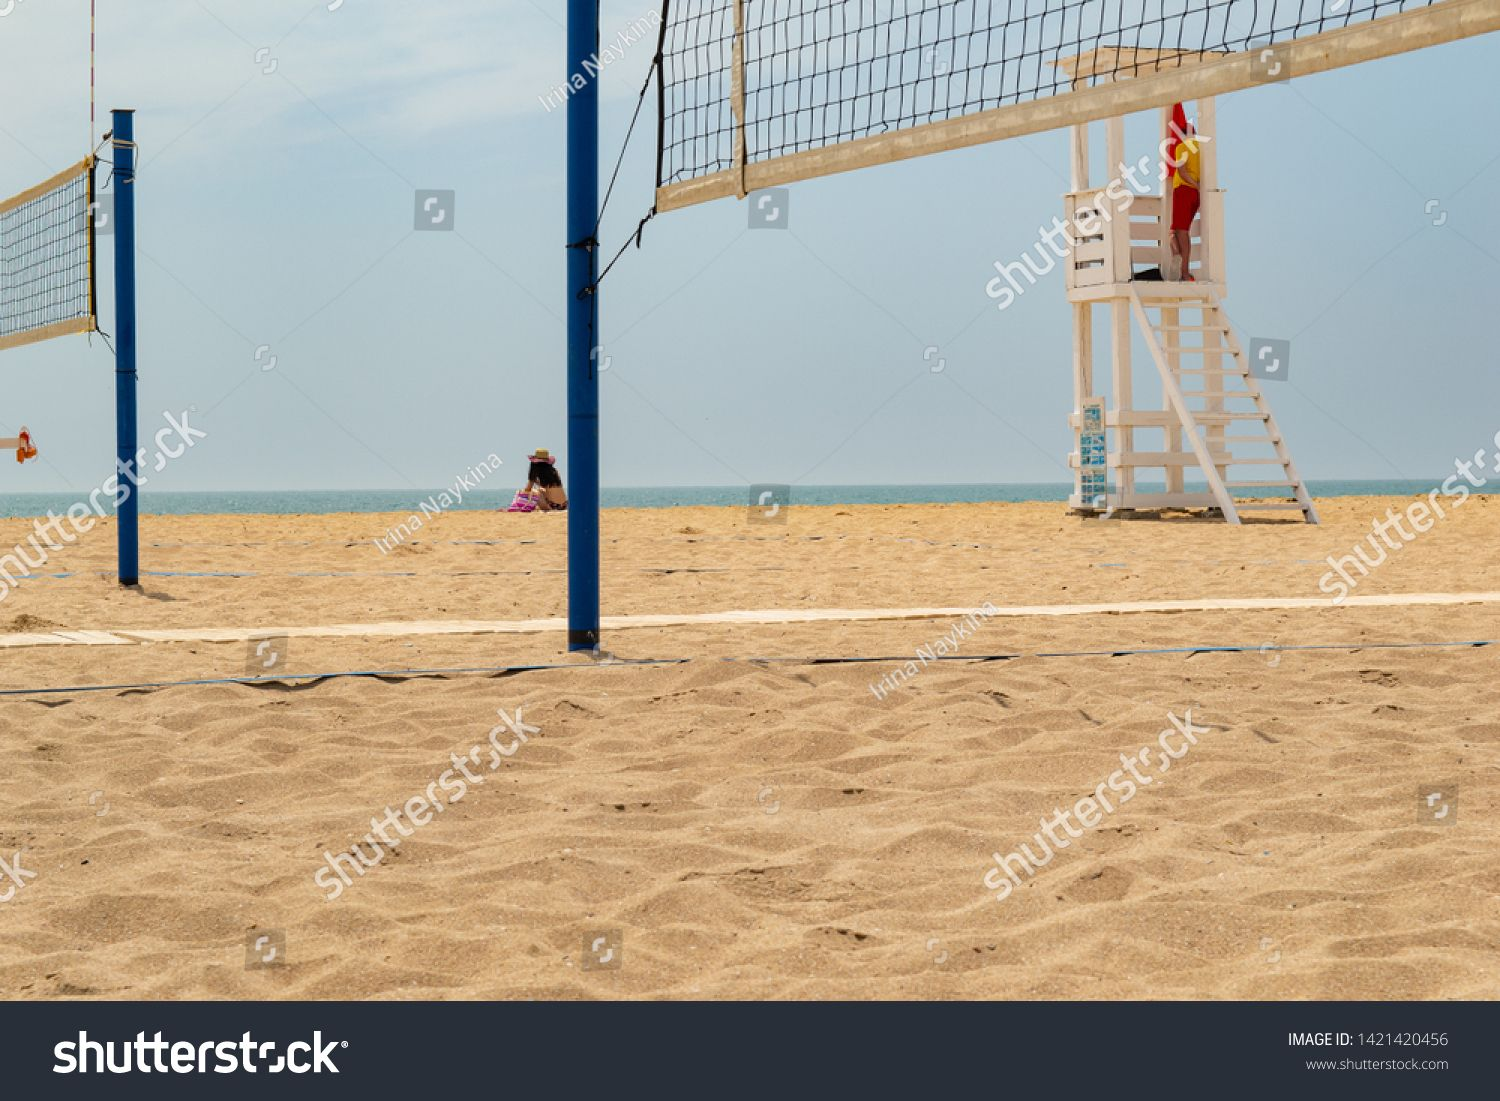 Beach Volleyball Volleyball Court On The Beach Lifeguard Cabin On The Beach The Concept Of Active Sports Sum Beach Lifeguard Beach Volleyball Summer Sports